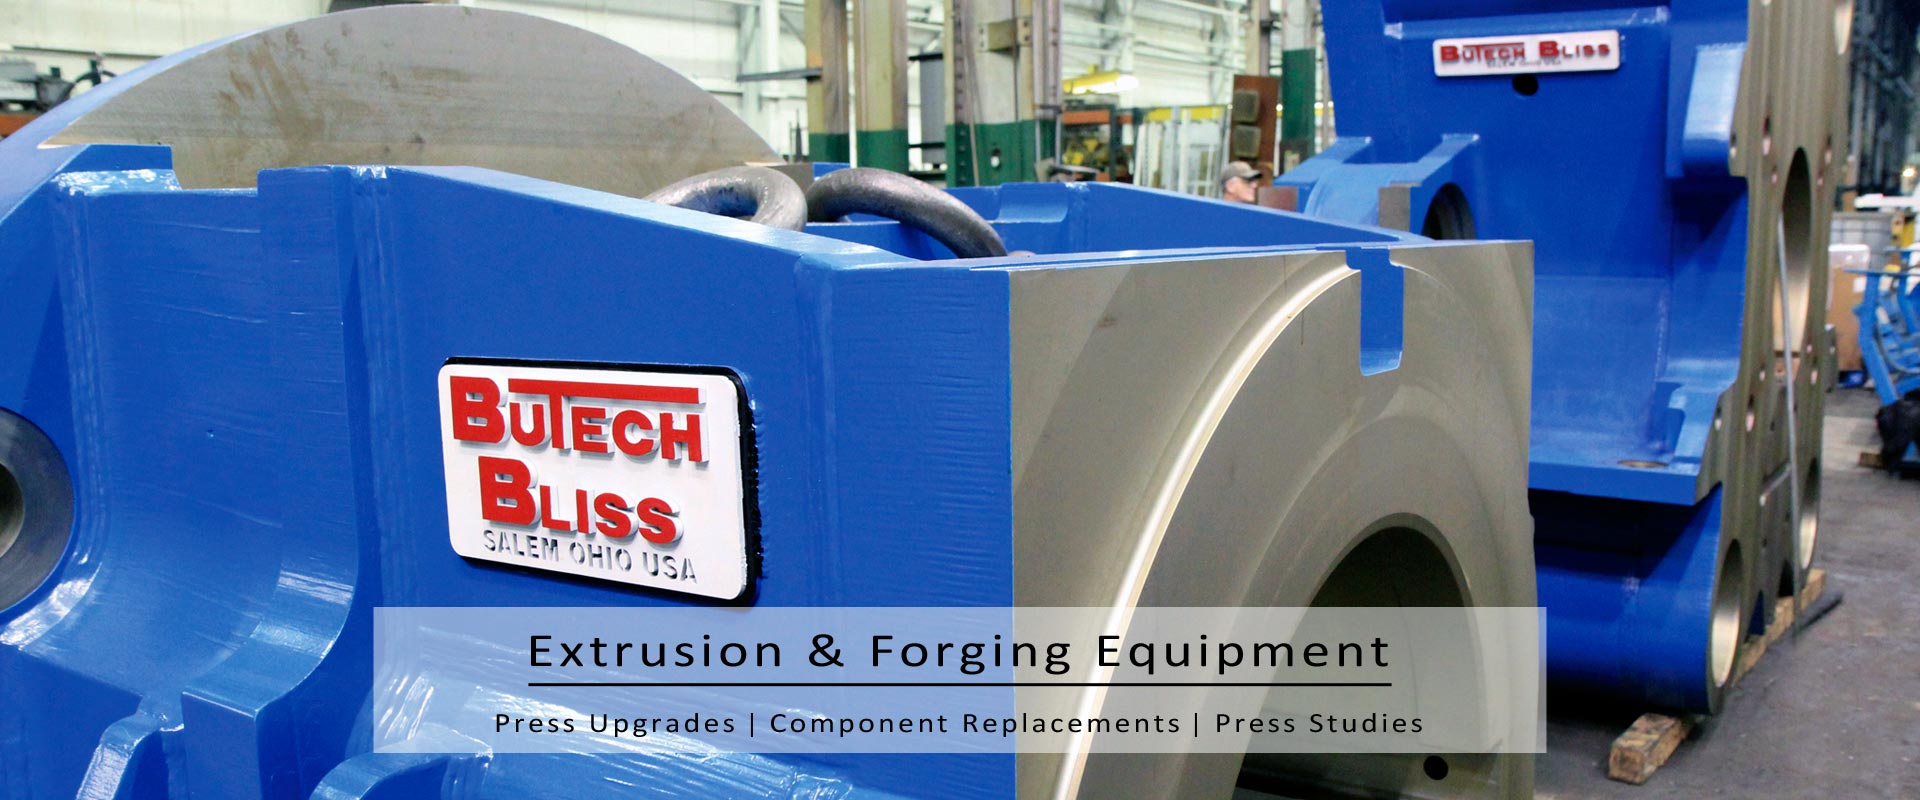 extrusion & forging equipment-press-upgrades-component-replacement-press-studies